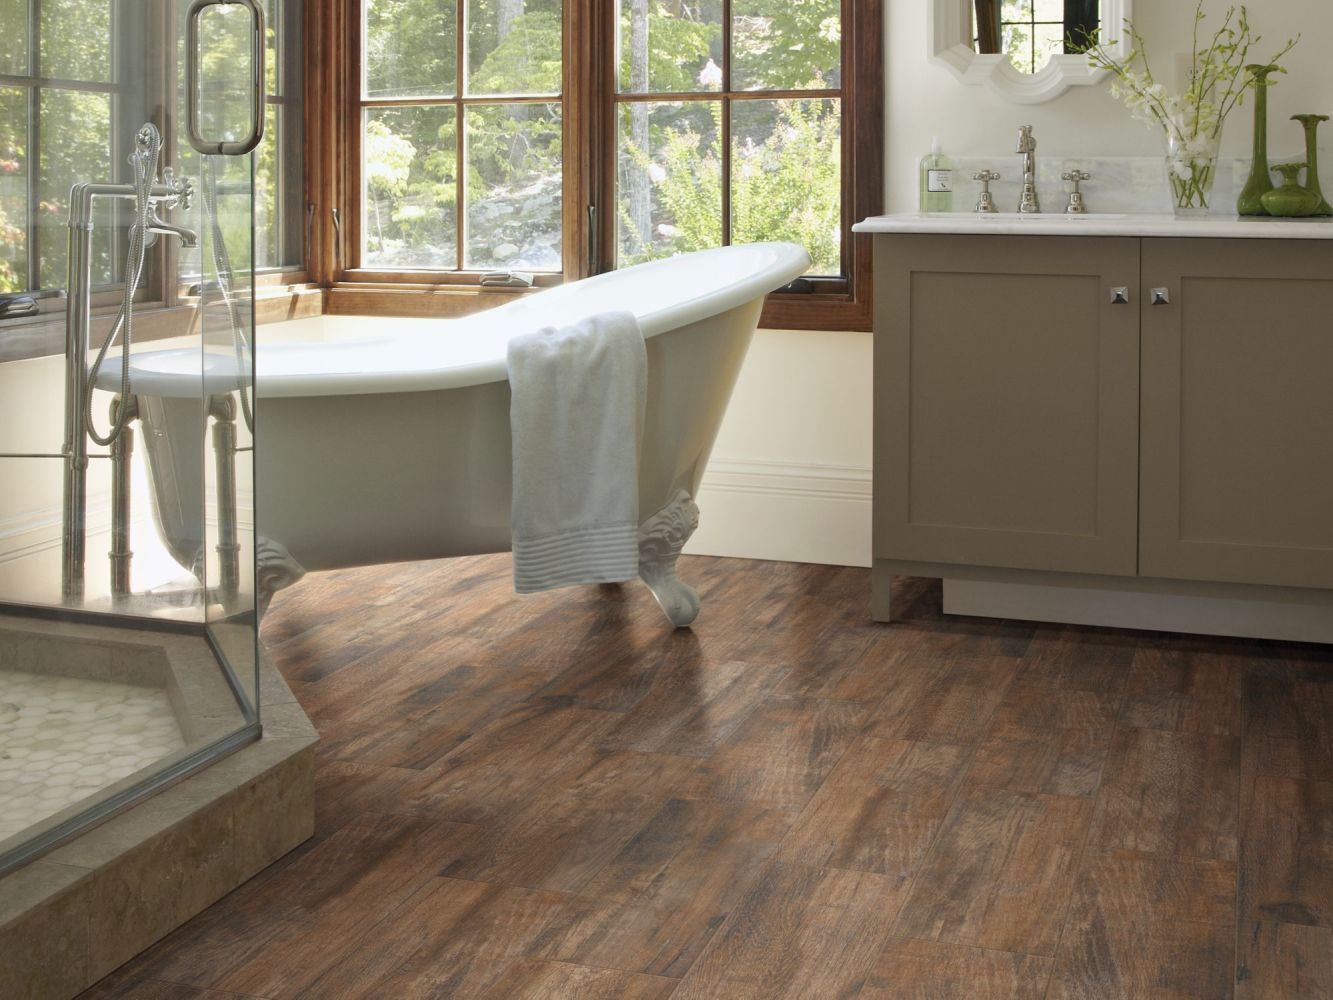 Shaw Floors Home Fn Gold Ceramic Ventura 7×22 Brown 00700_TGP58